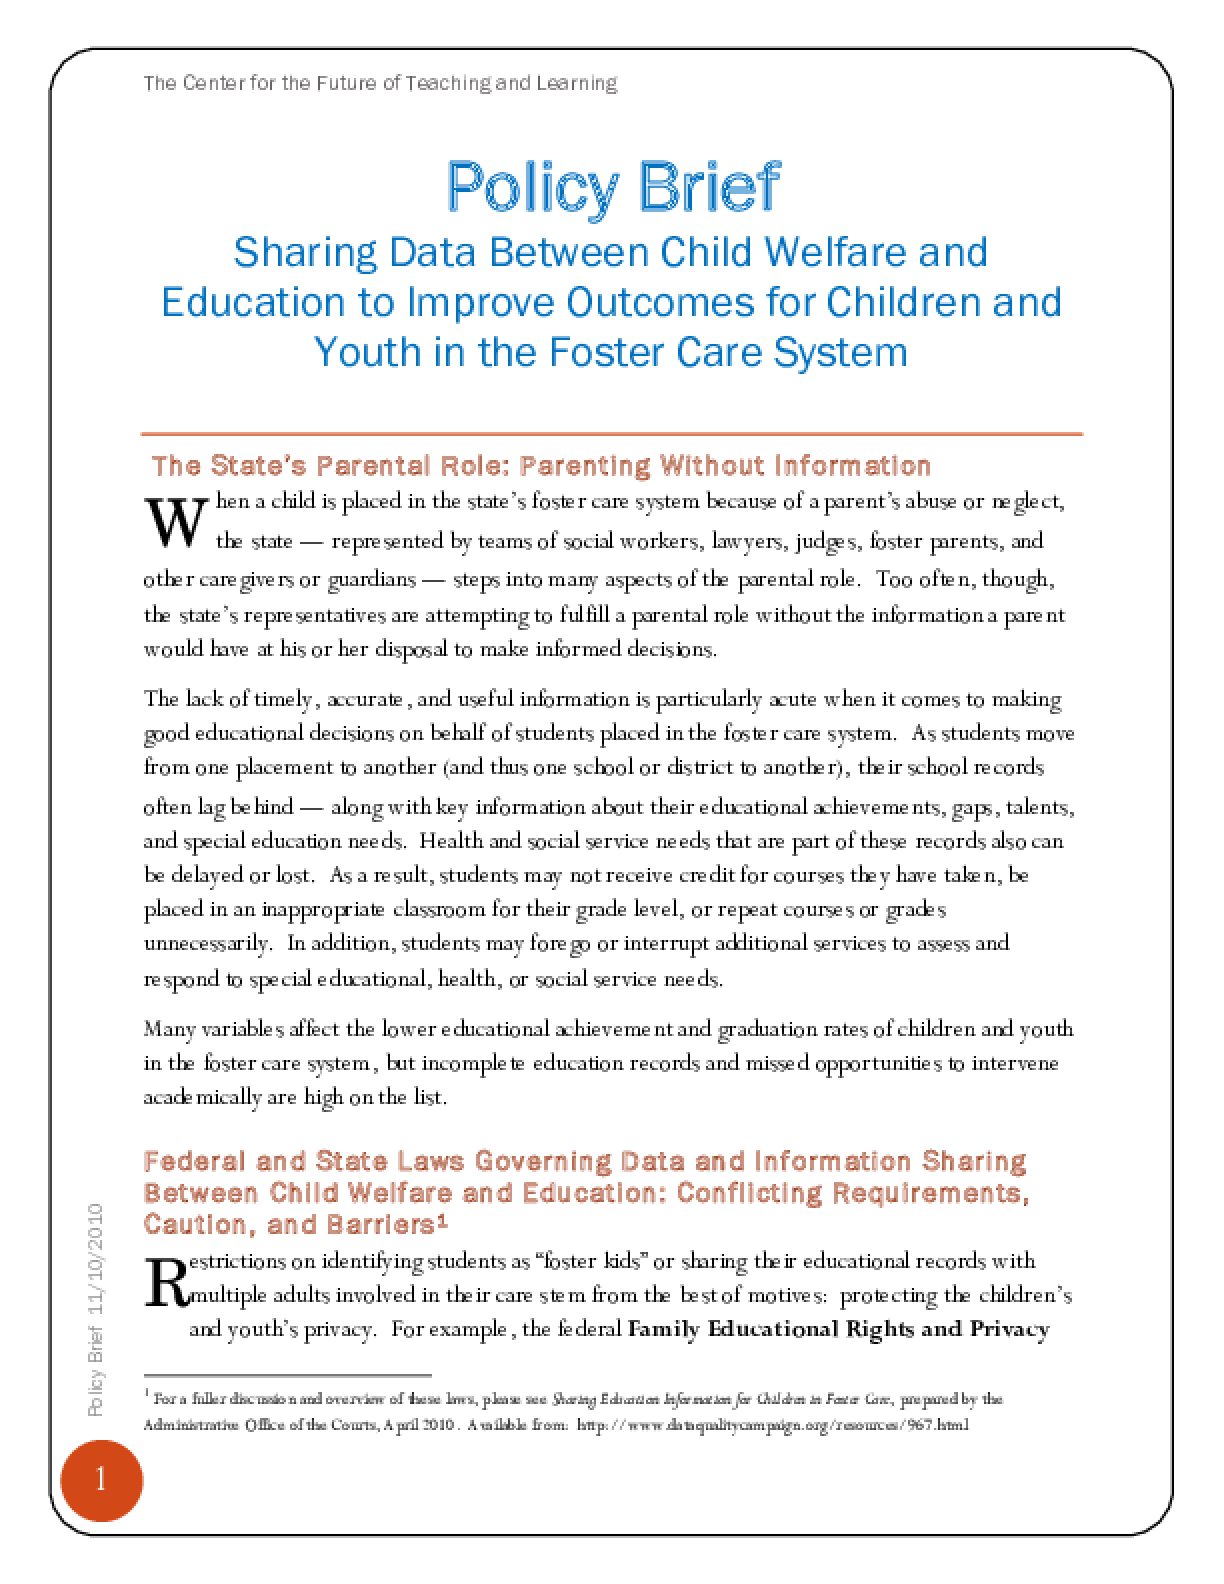 Sharing Data Between Child Welfare and Education to Improve Outcomes for Children and Youth in the Foster Care System